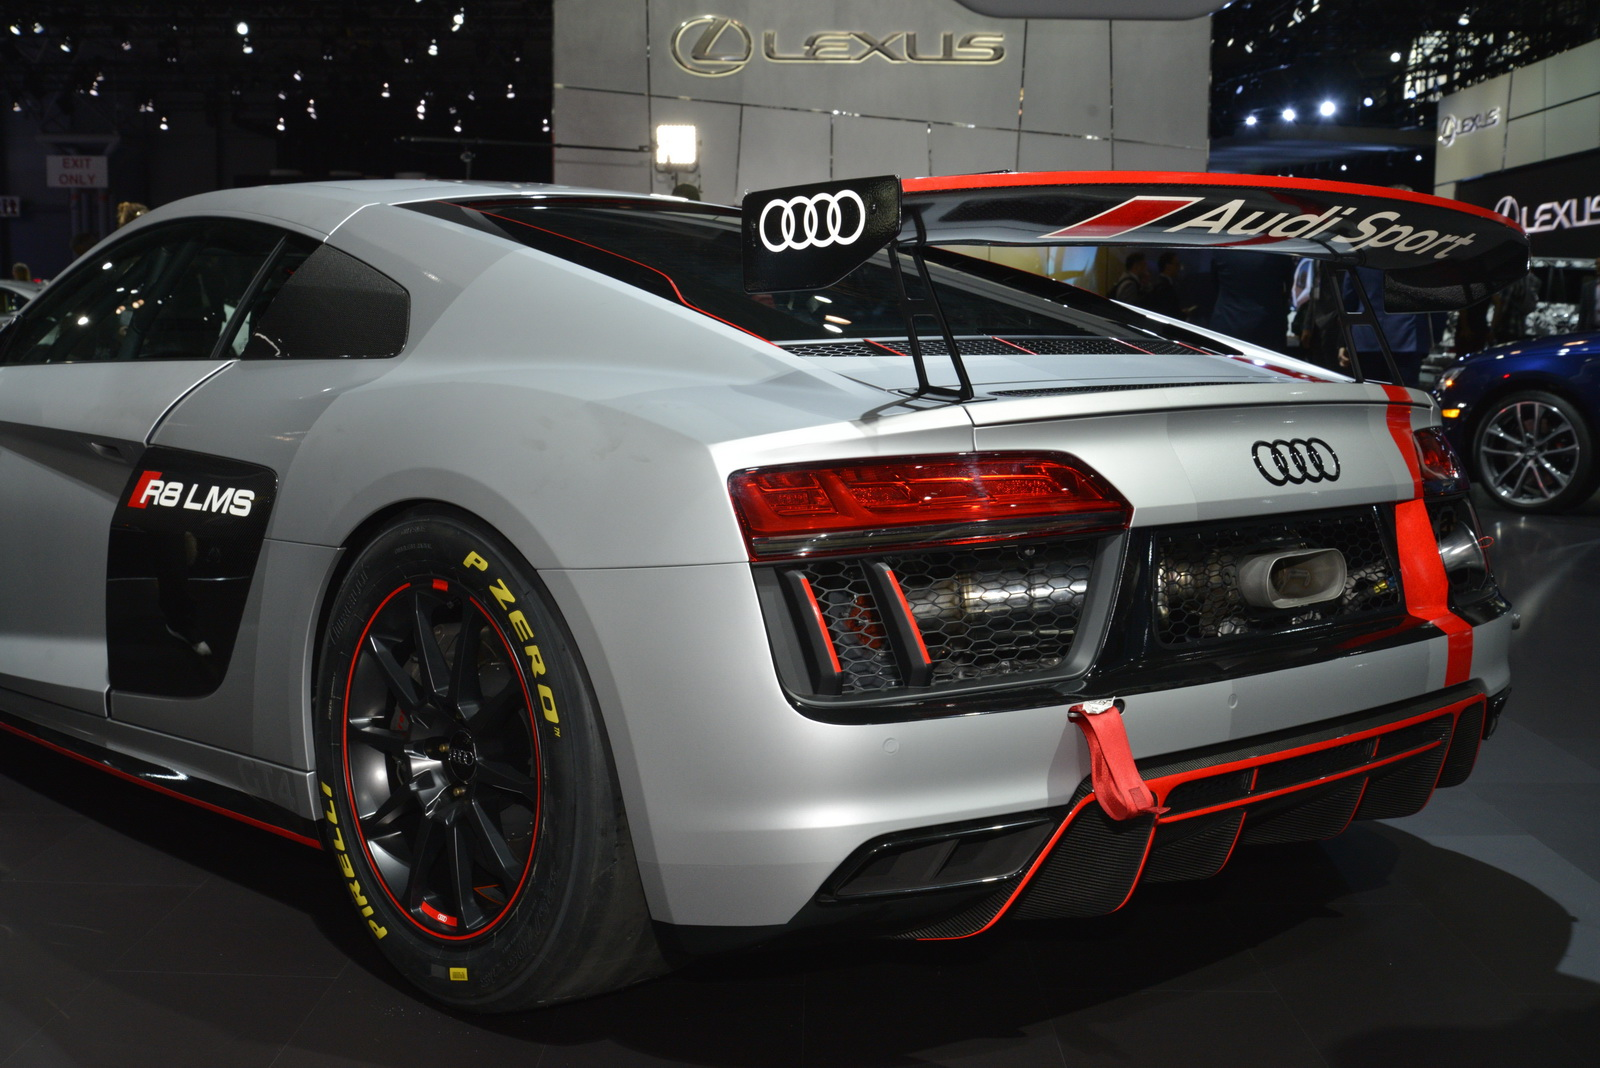 audi sport officially launched in america will bring 8 new rs models by 2019 carscoops. Black Bedroom Furniture Sets. Home Design Ideas